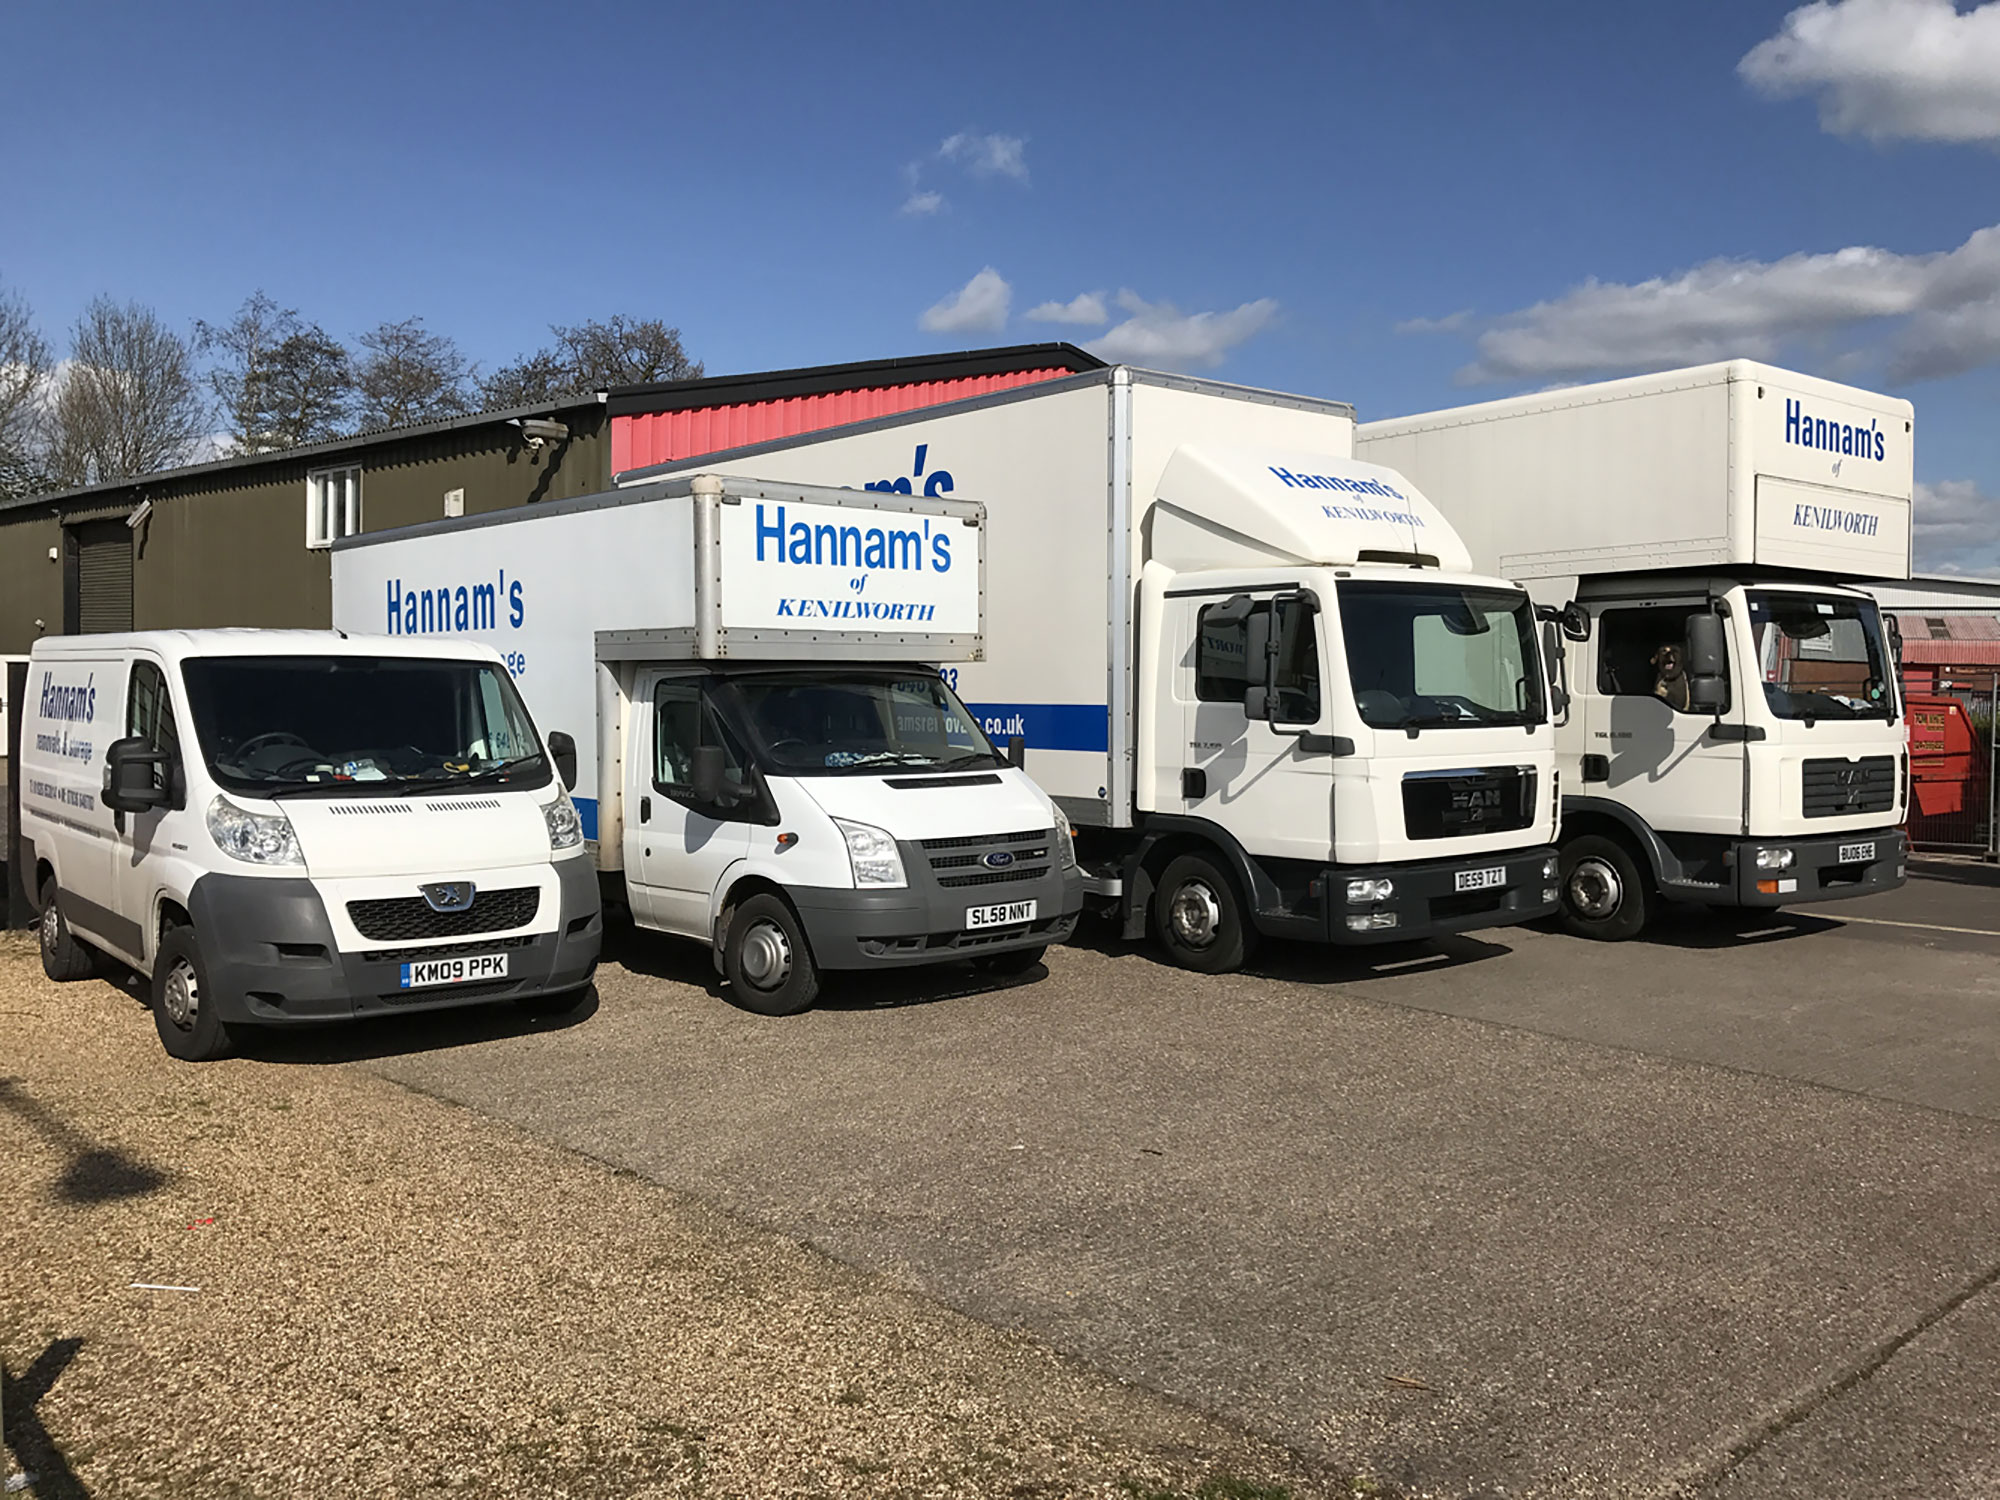 Hannam's Removals